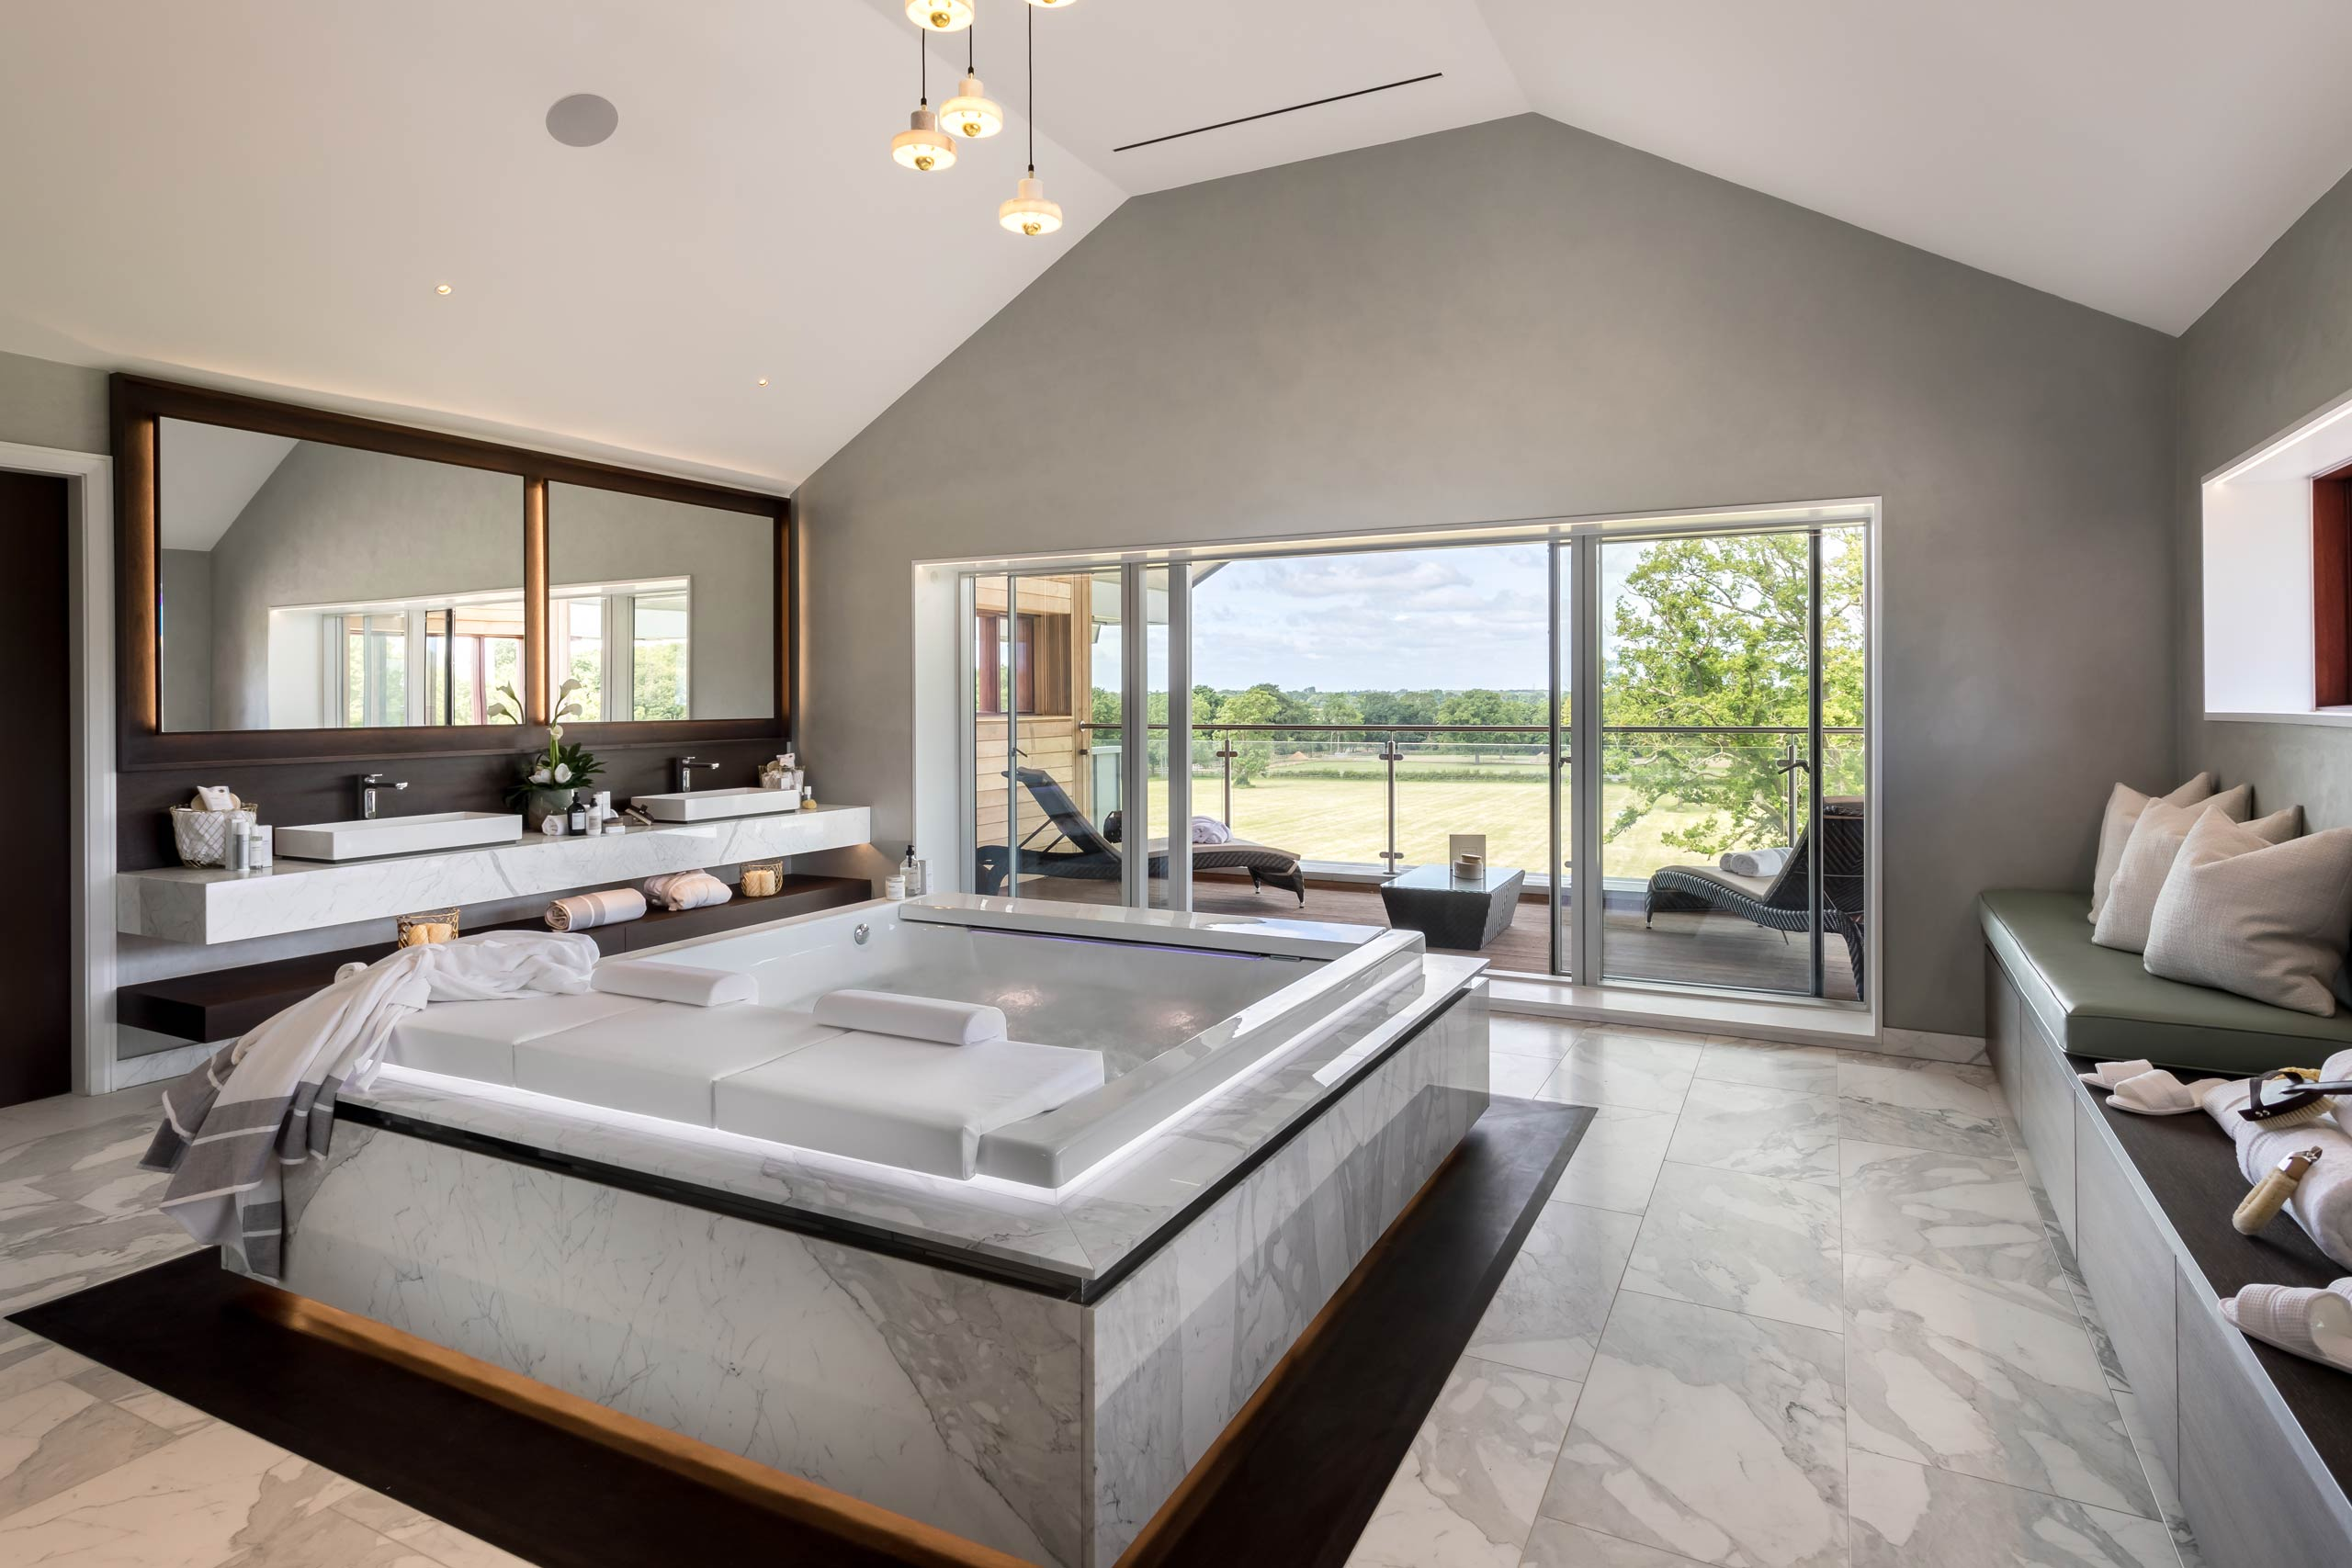 Ethos Construction | About | Spa room